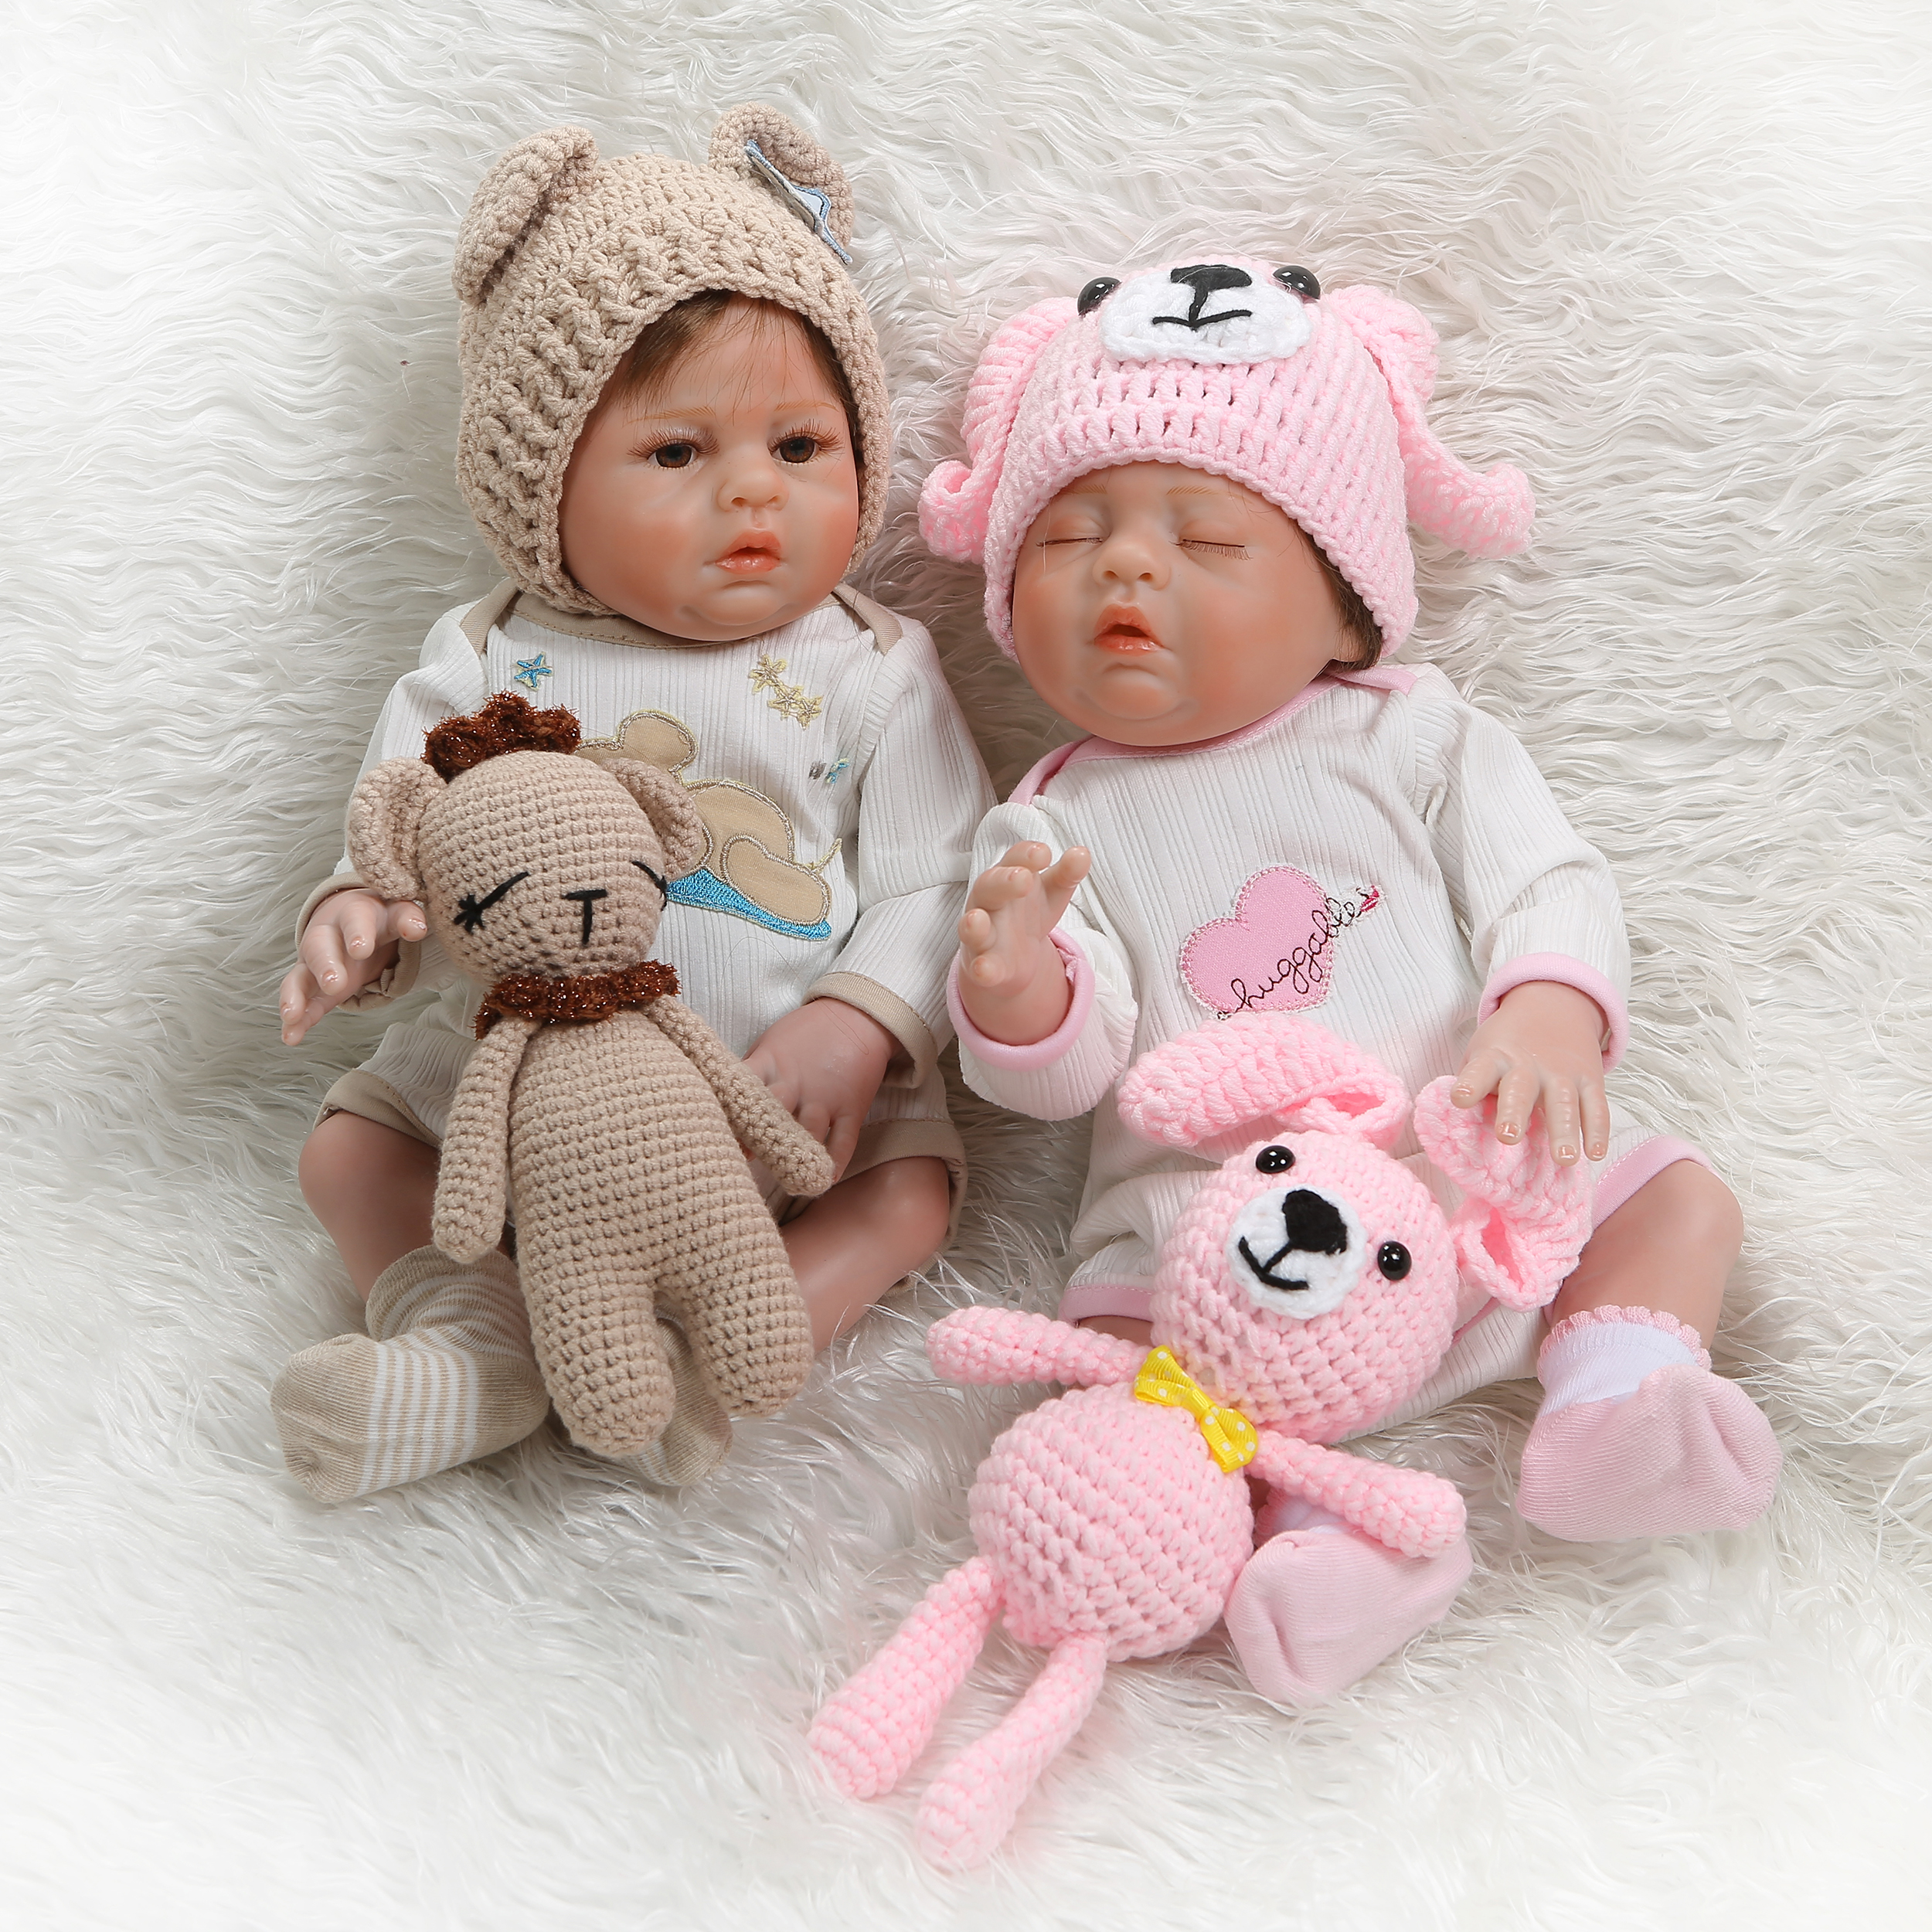 NPKCOLLECTION 48CM bebe doll reborn newborn doll twin baby boy and girl hand detailed painting pinky look full body siliconeNPKCOLLECTION 48CM bebe doll reborn newborn doll twin baby boy and girl hand detailed painting pinky look full body silicone